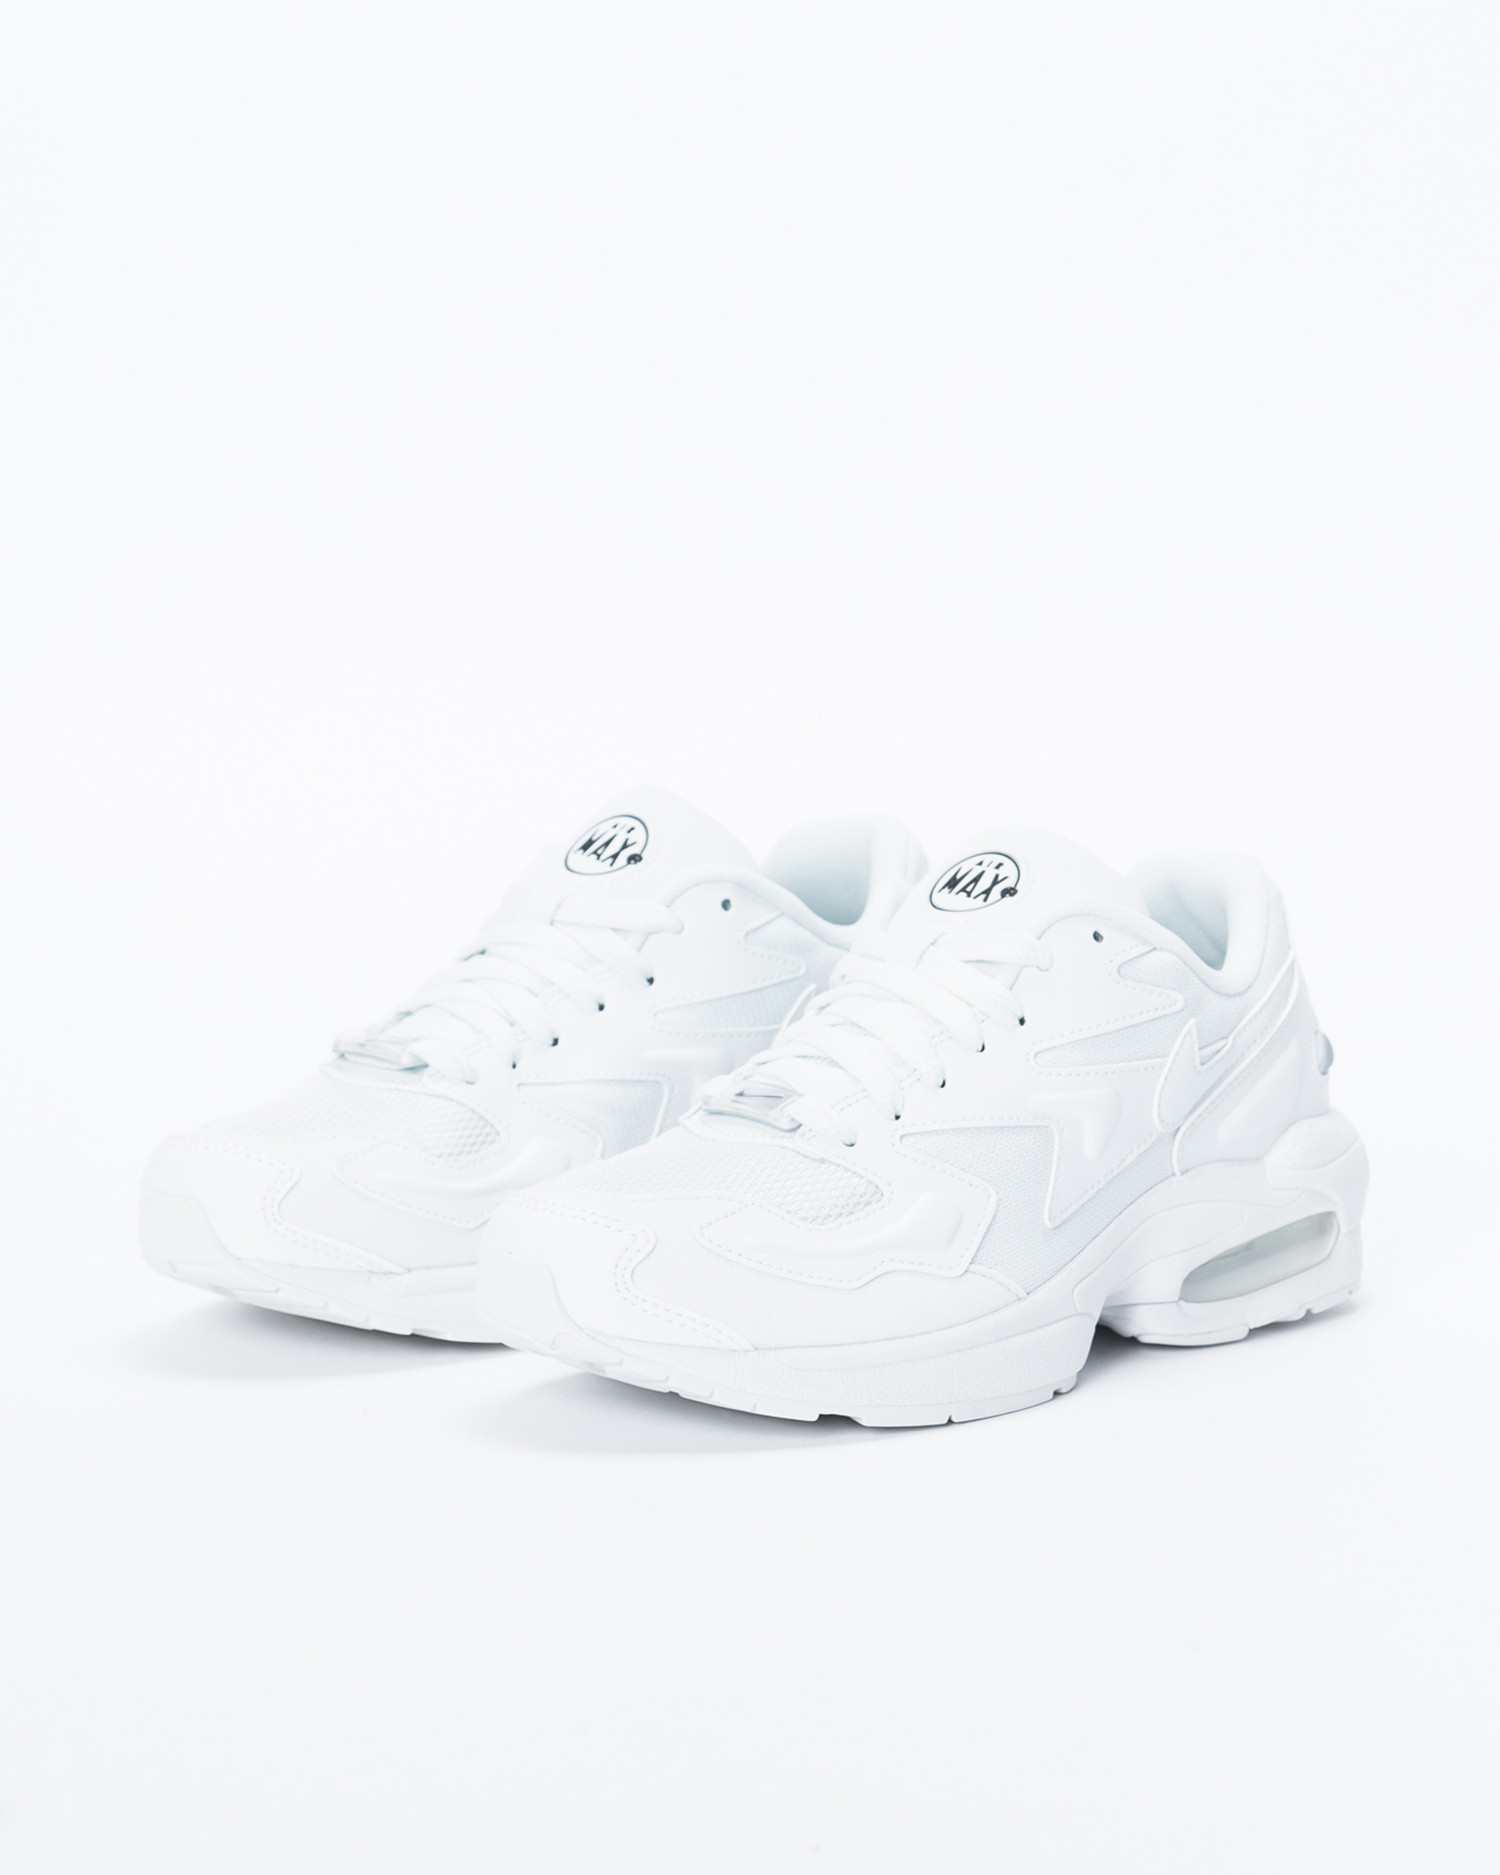 Nike Air Max 2 Light Off White/Off White